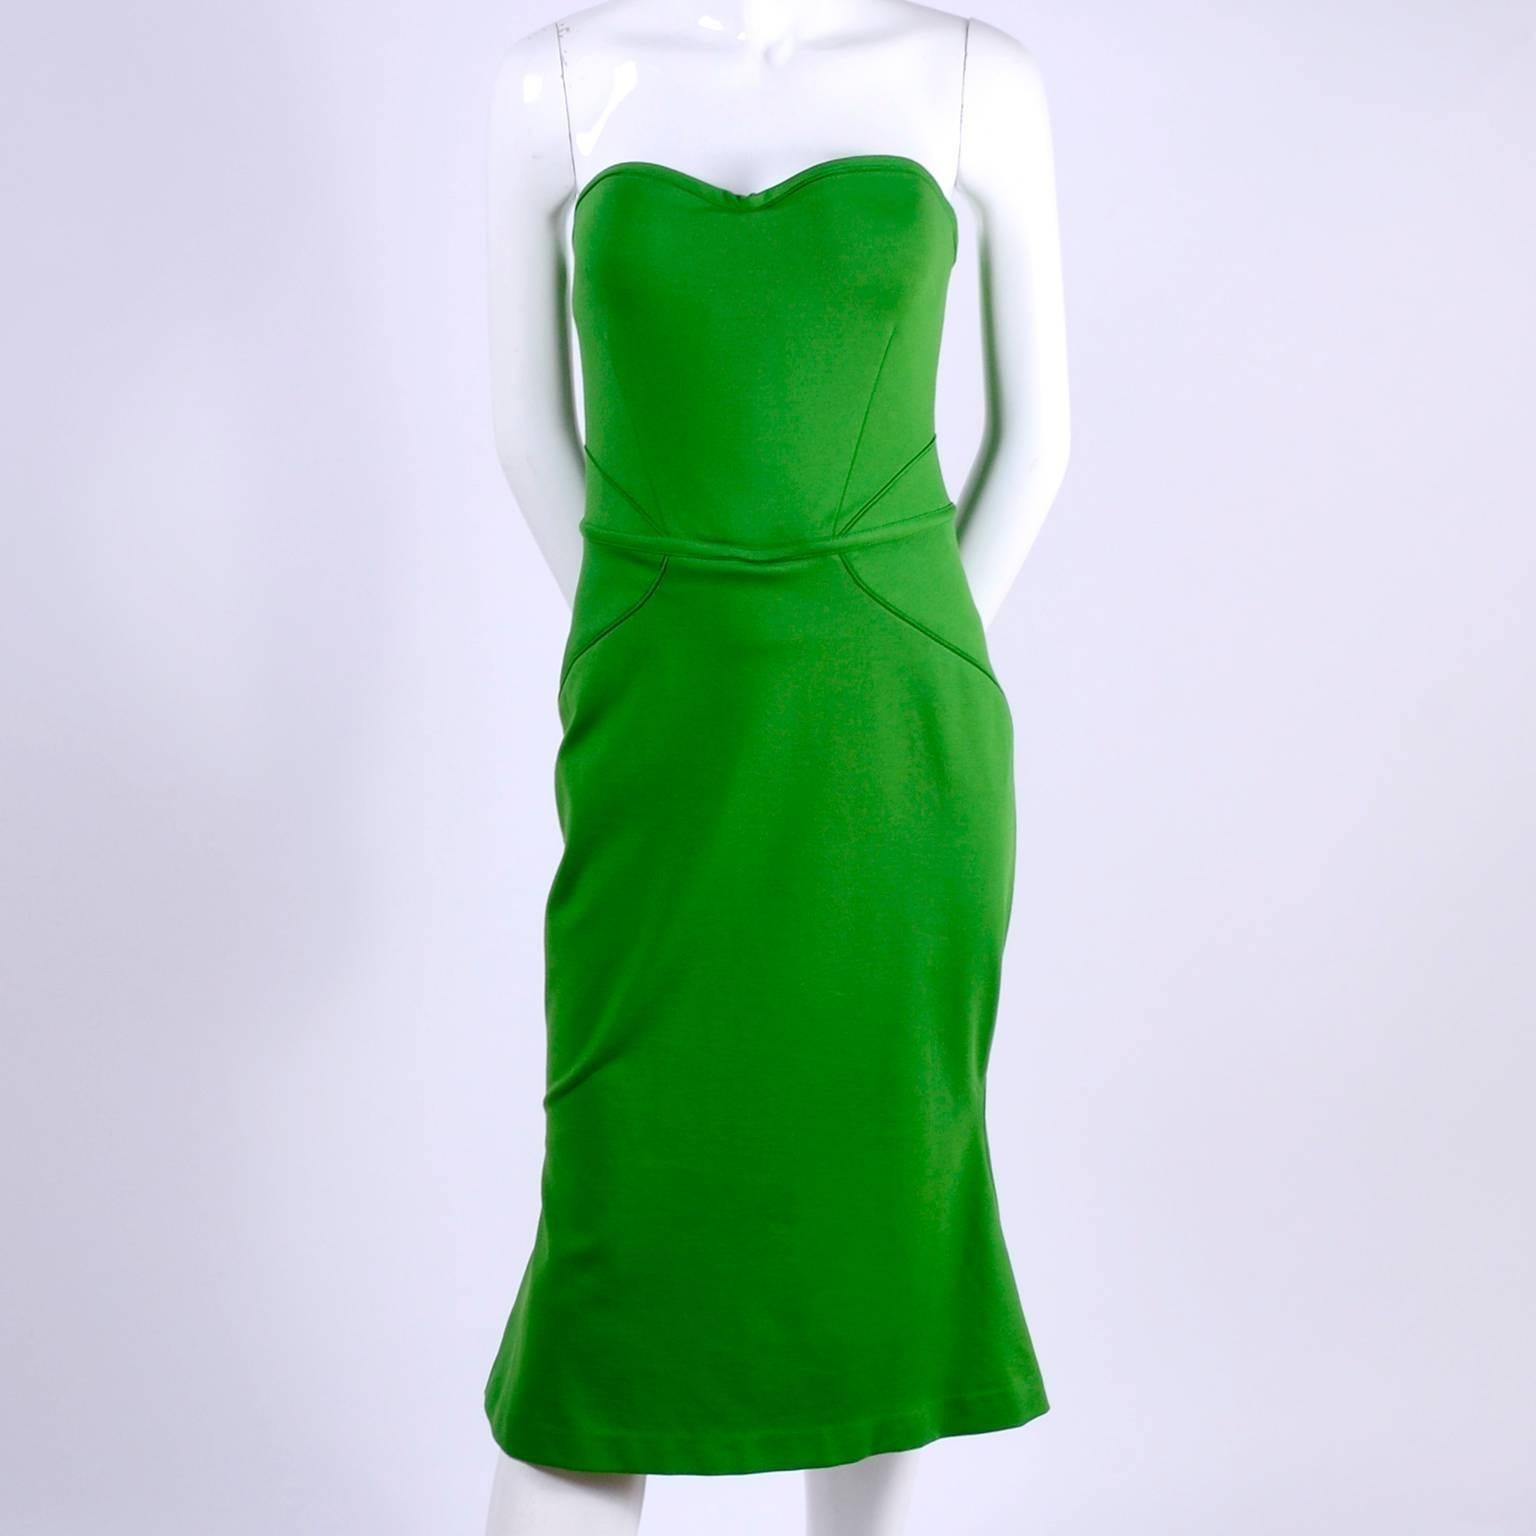 0fce18920ab Zac Posen Strapless Dress in Green W Sweetheart Bodice Hourglass Shape and  Corset For Sale at 1stdibs